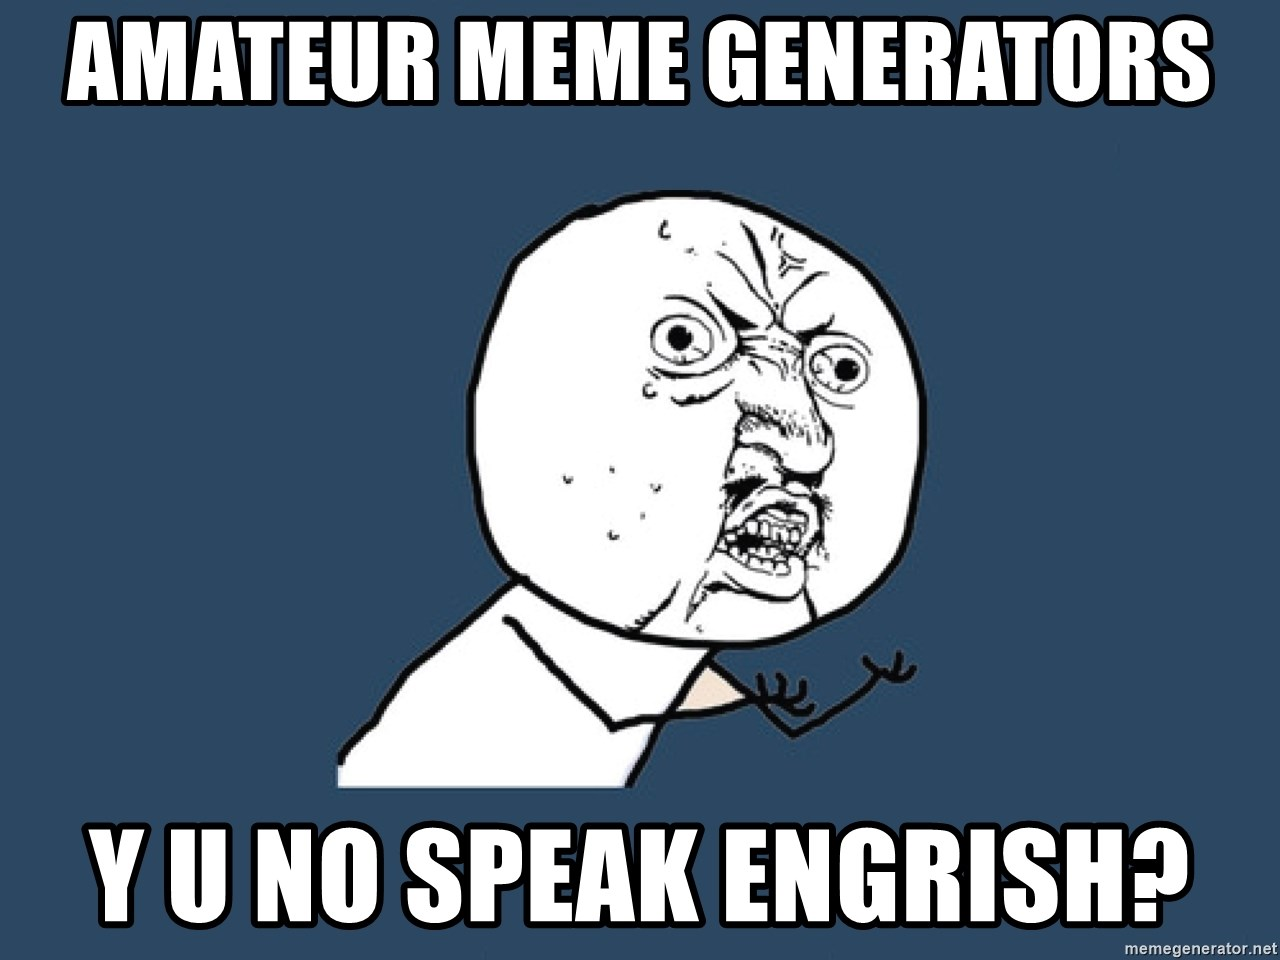 Y U No - AMATEUR MEME GENERATORS Y U NO SPEAK ENGRISH?